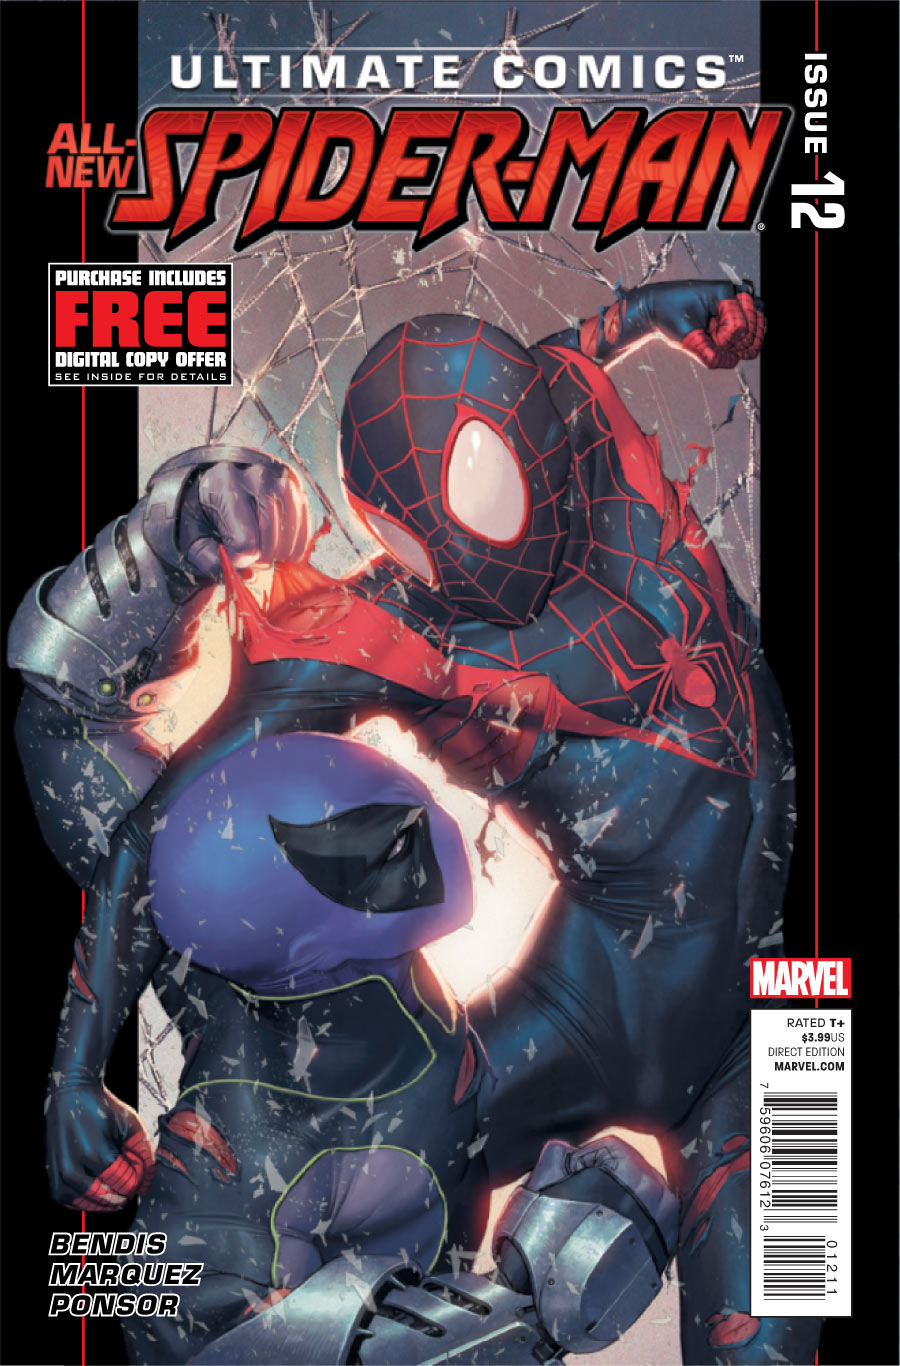 Ultimate spider man comic - photo#6